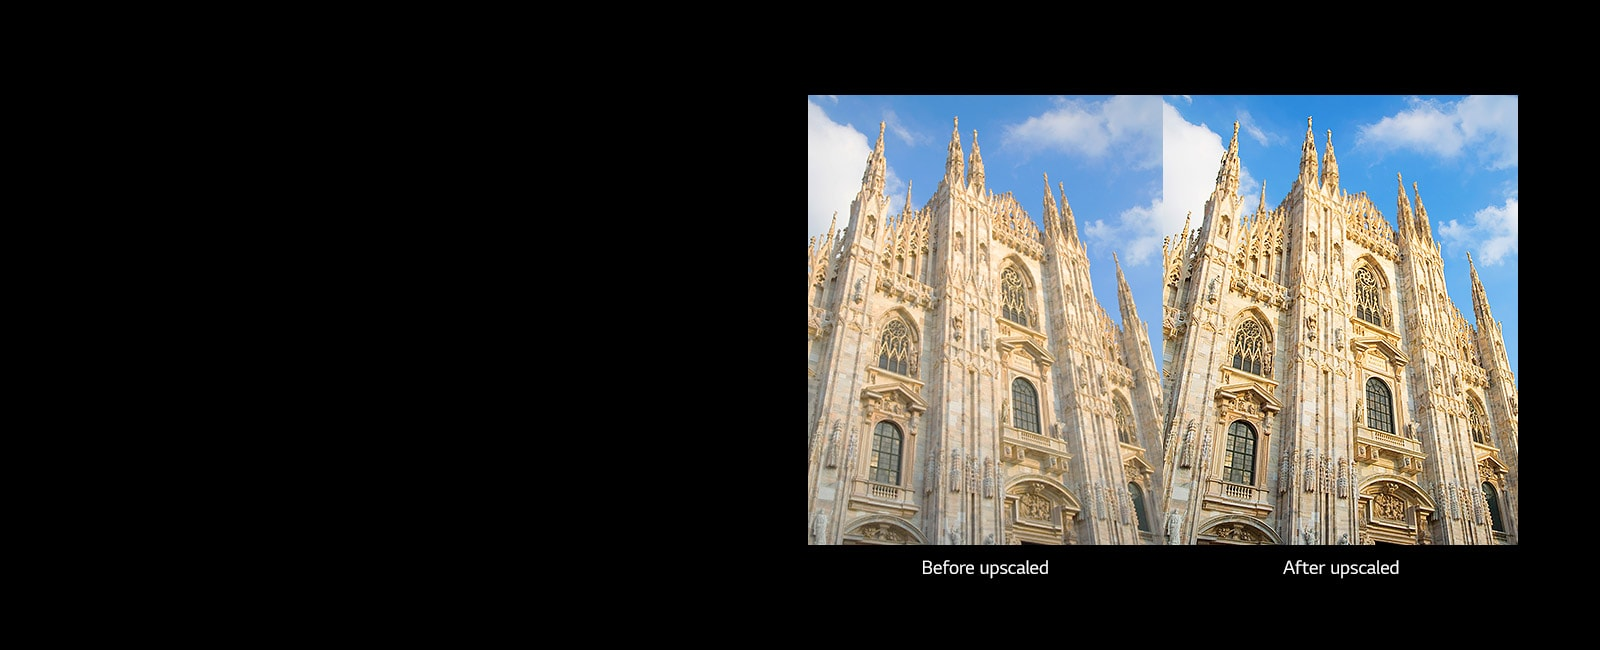 Comparison of a catholic church before and after upscaling